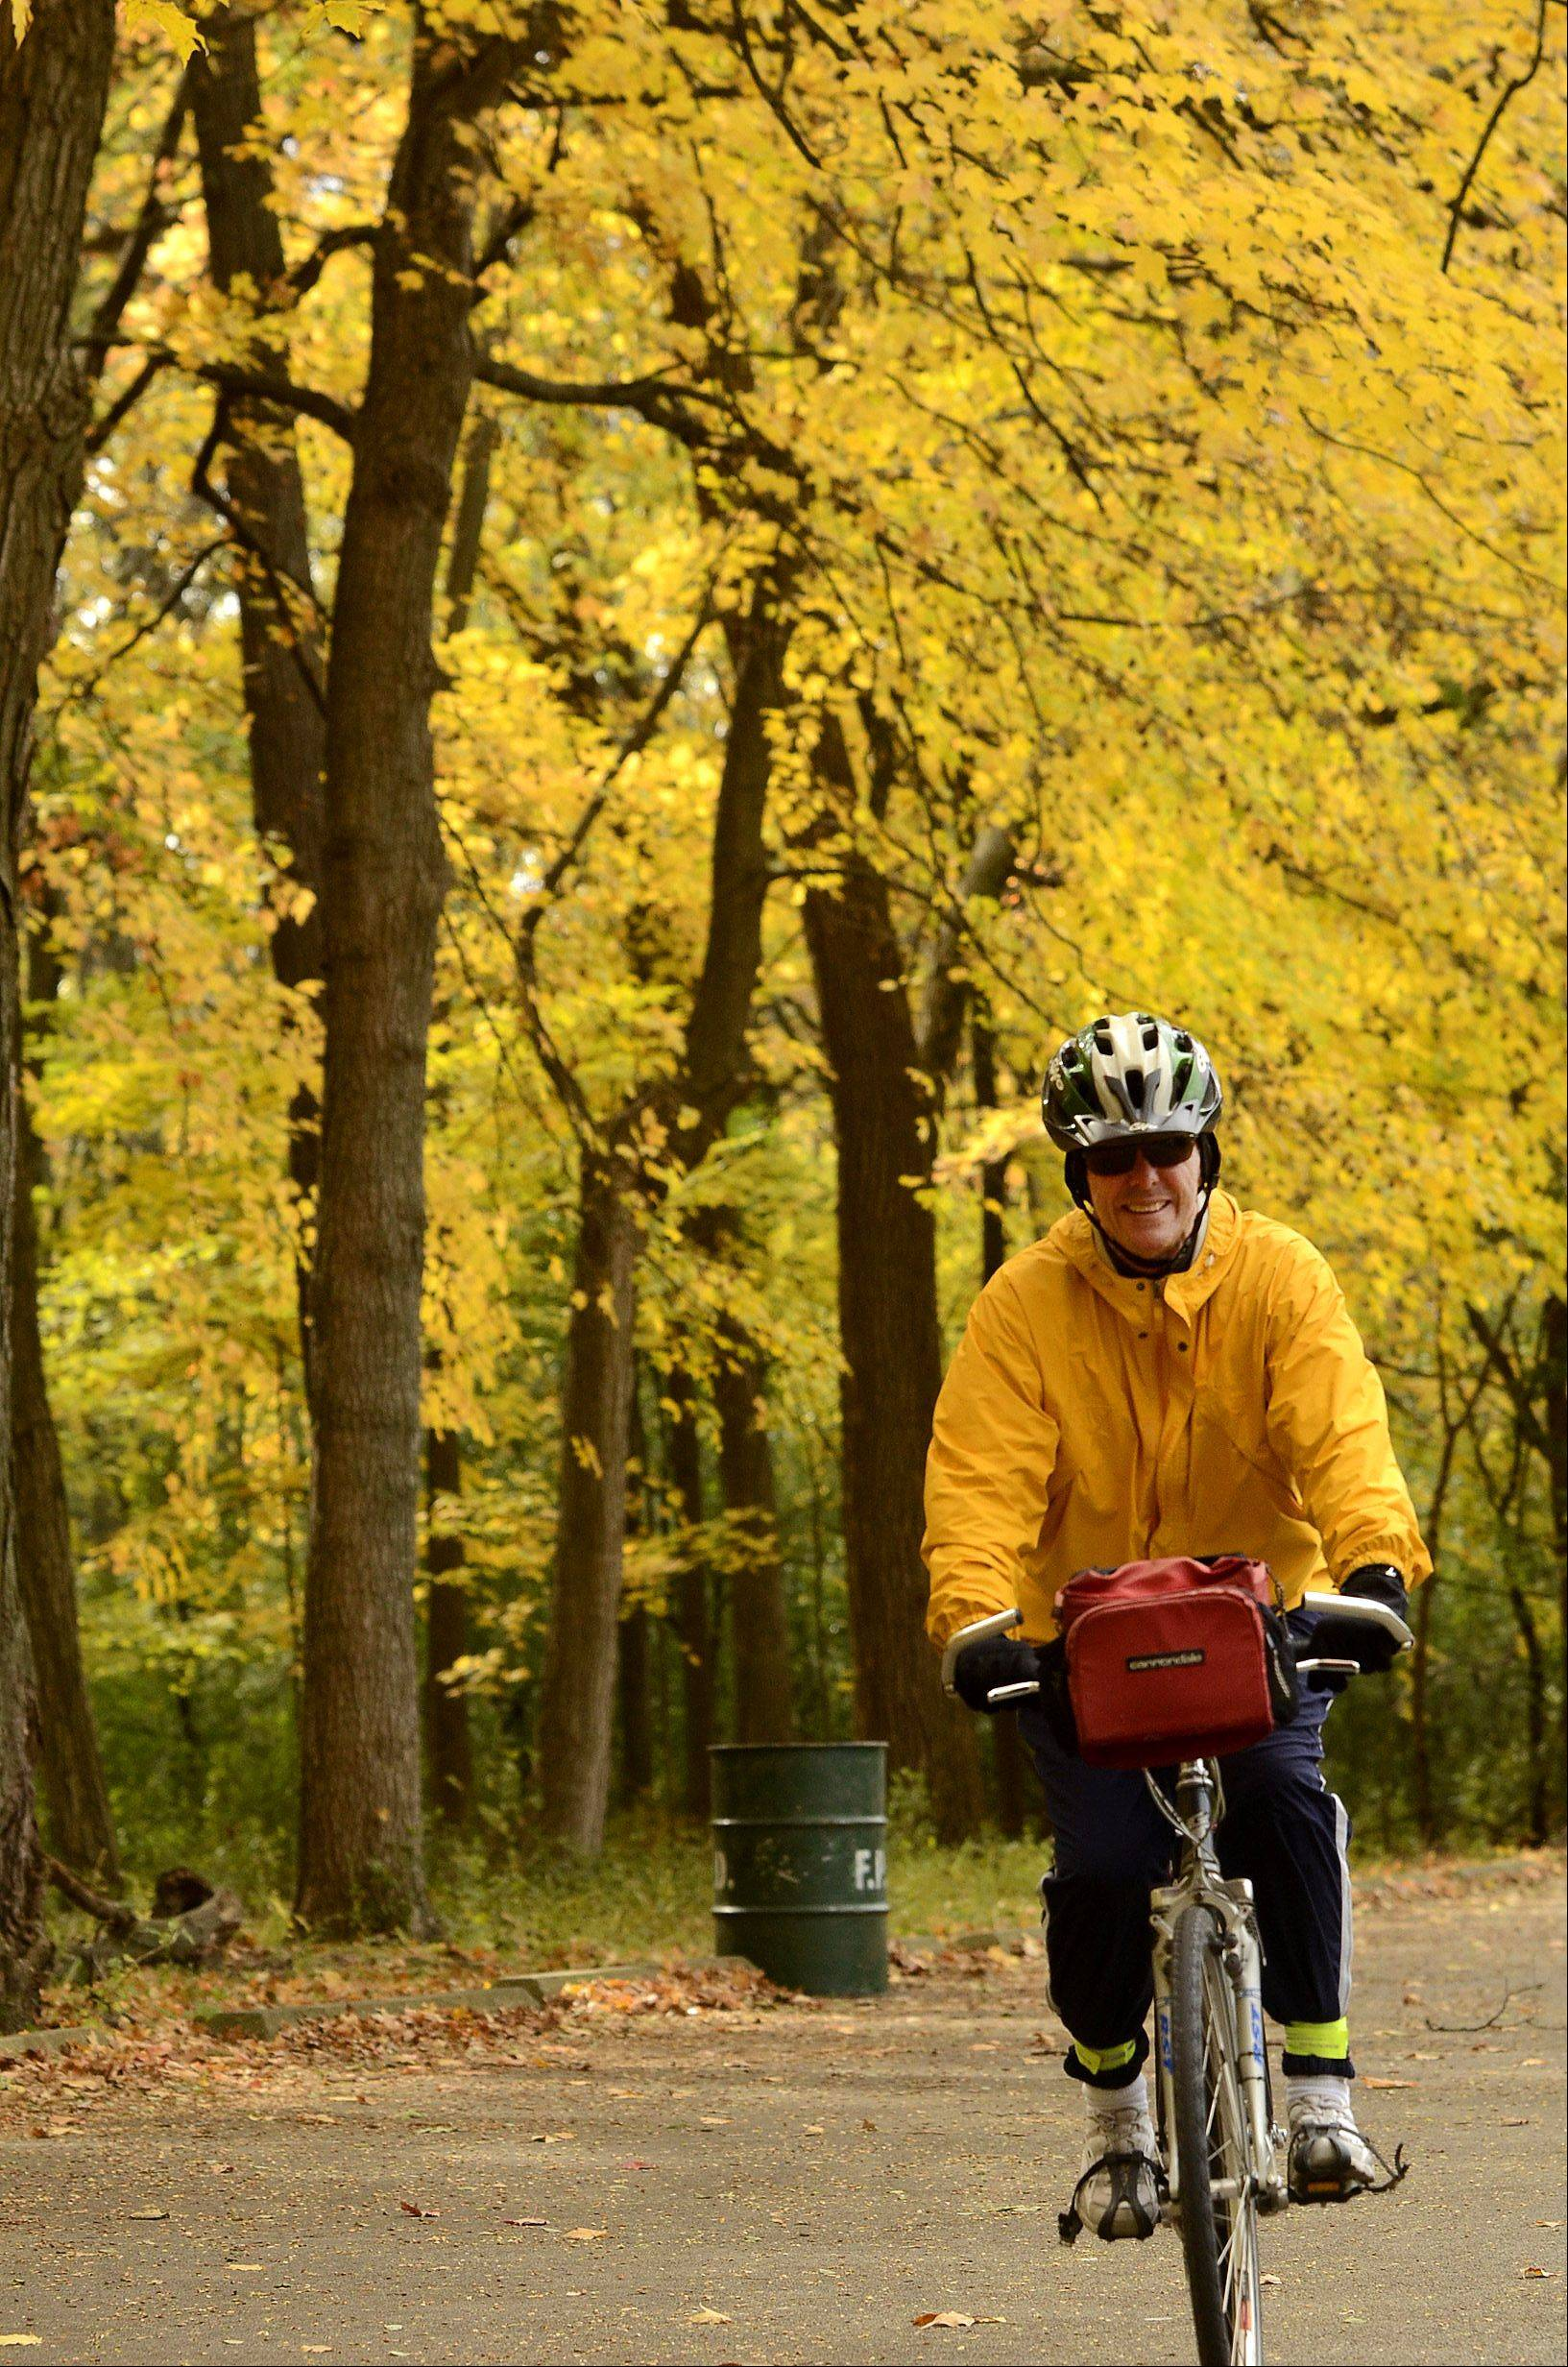 Tim Boyle of Des Plaines rides through Camp Pine Woods in Des Plaines at least once a week for usually 15-20 miles.